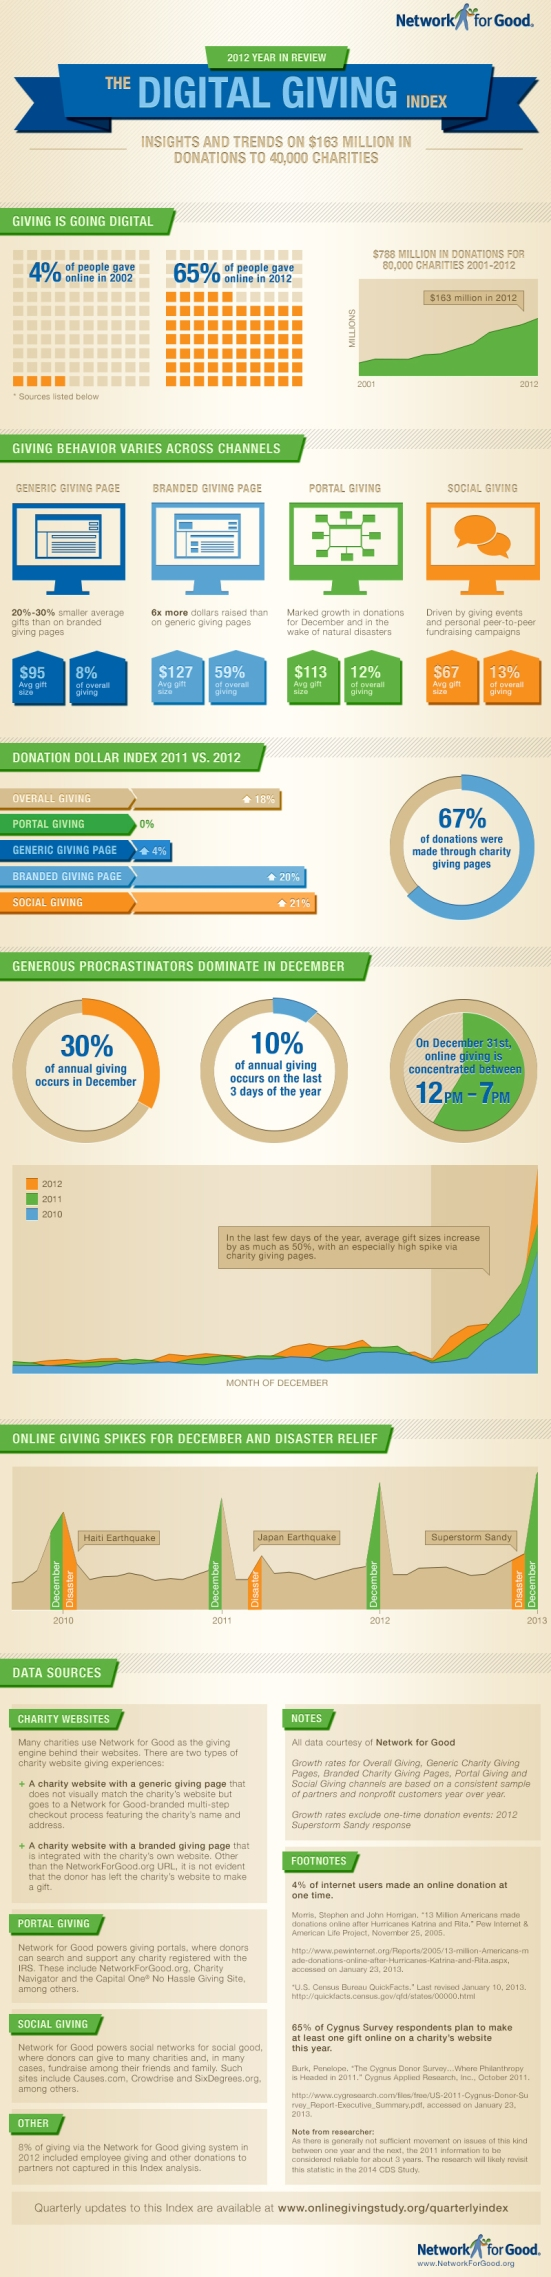 2012-digital-giving-index-infographic_511137fd7d89c